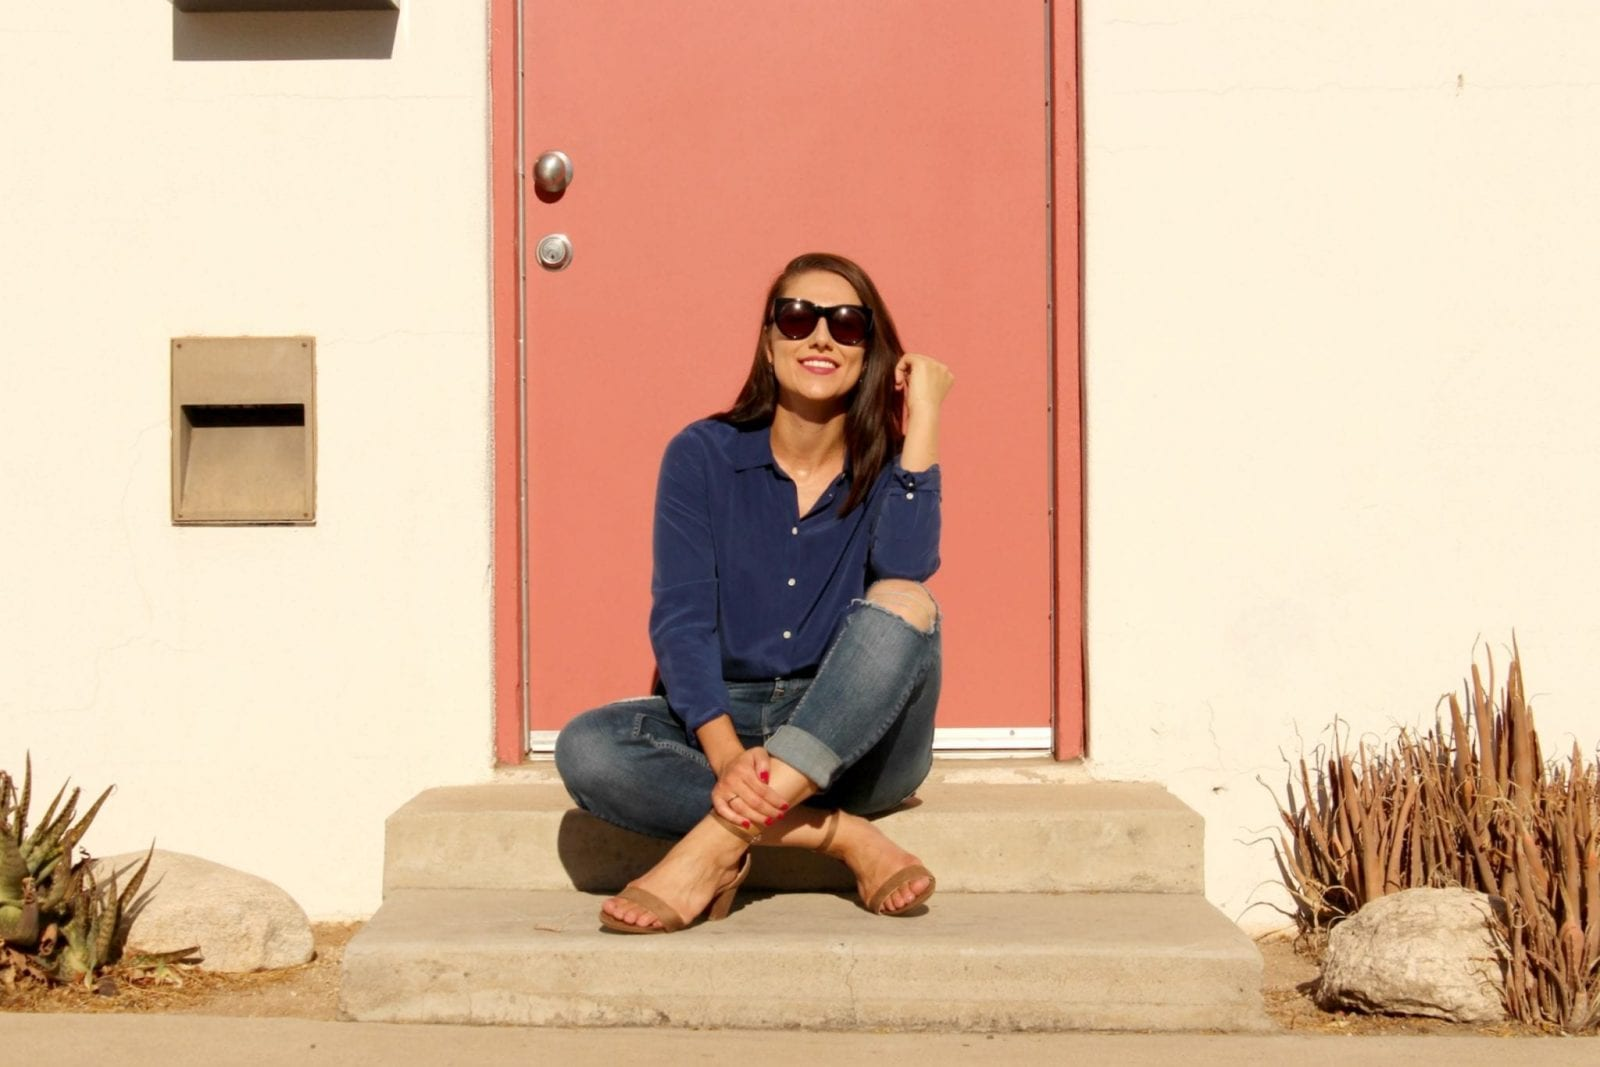 This is a shot of me rocking an Everlane blouse wiht blue jeans and ZooShoo sandals.